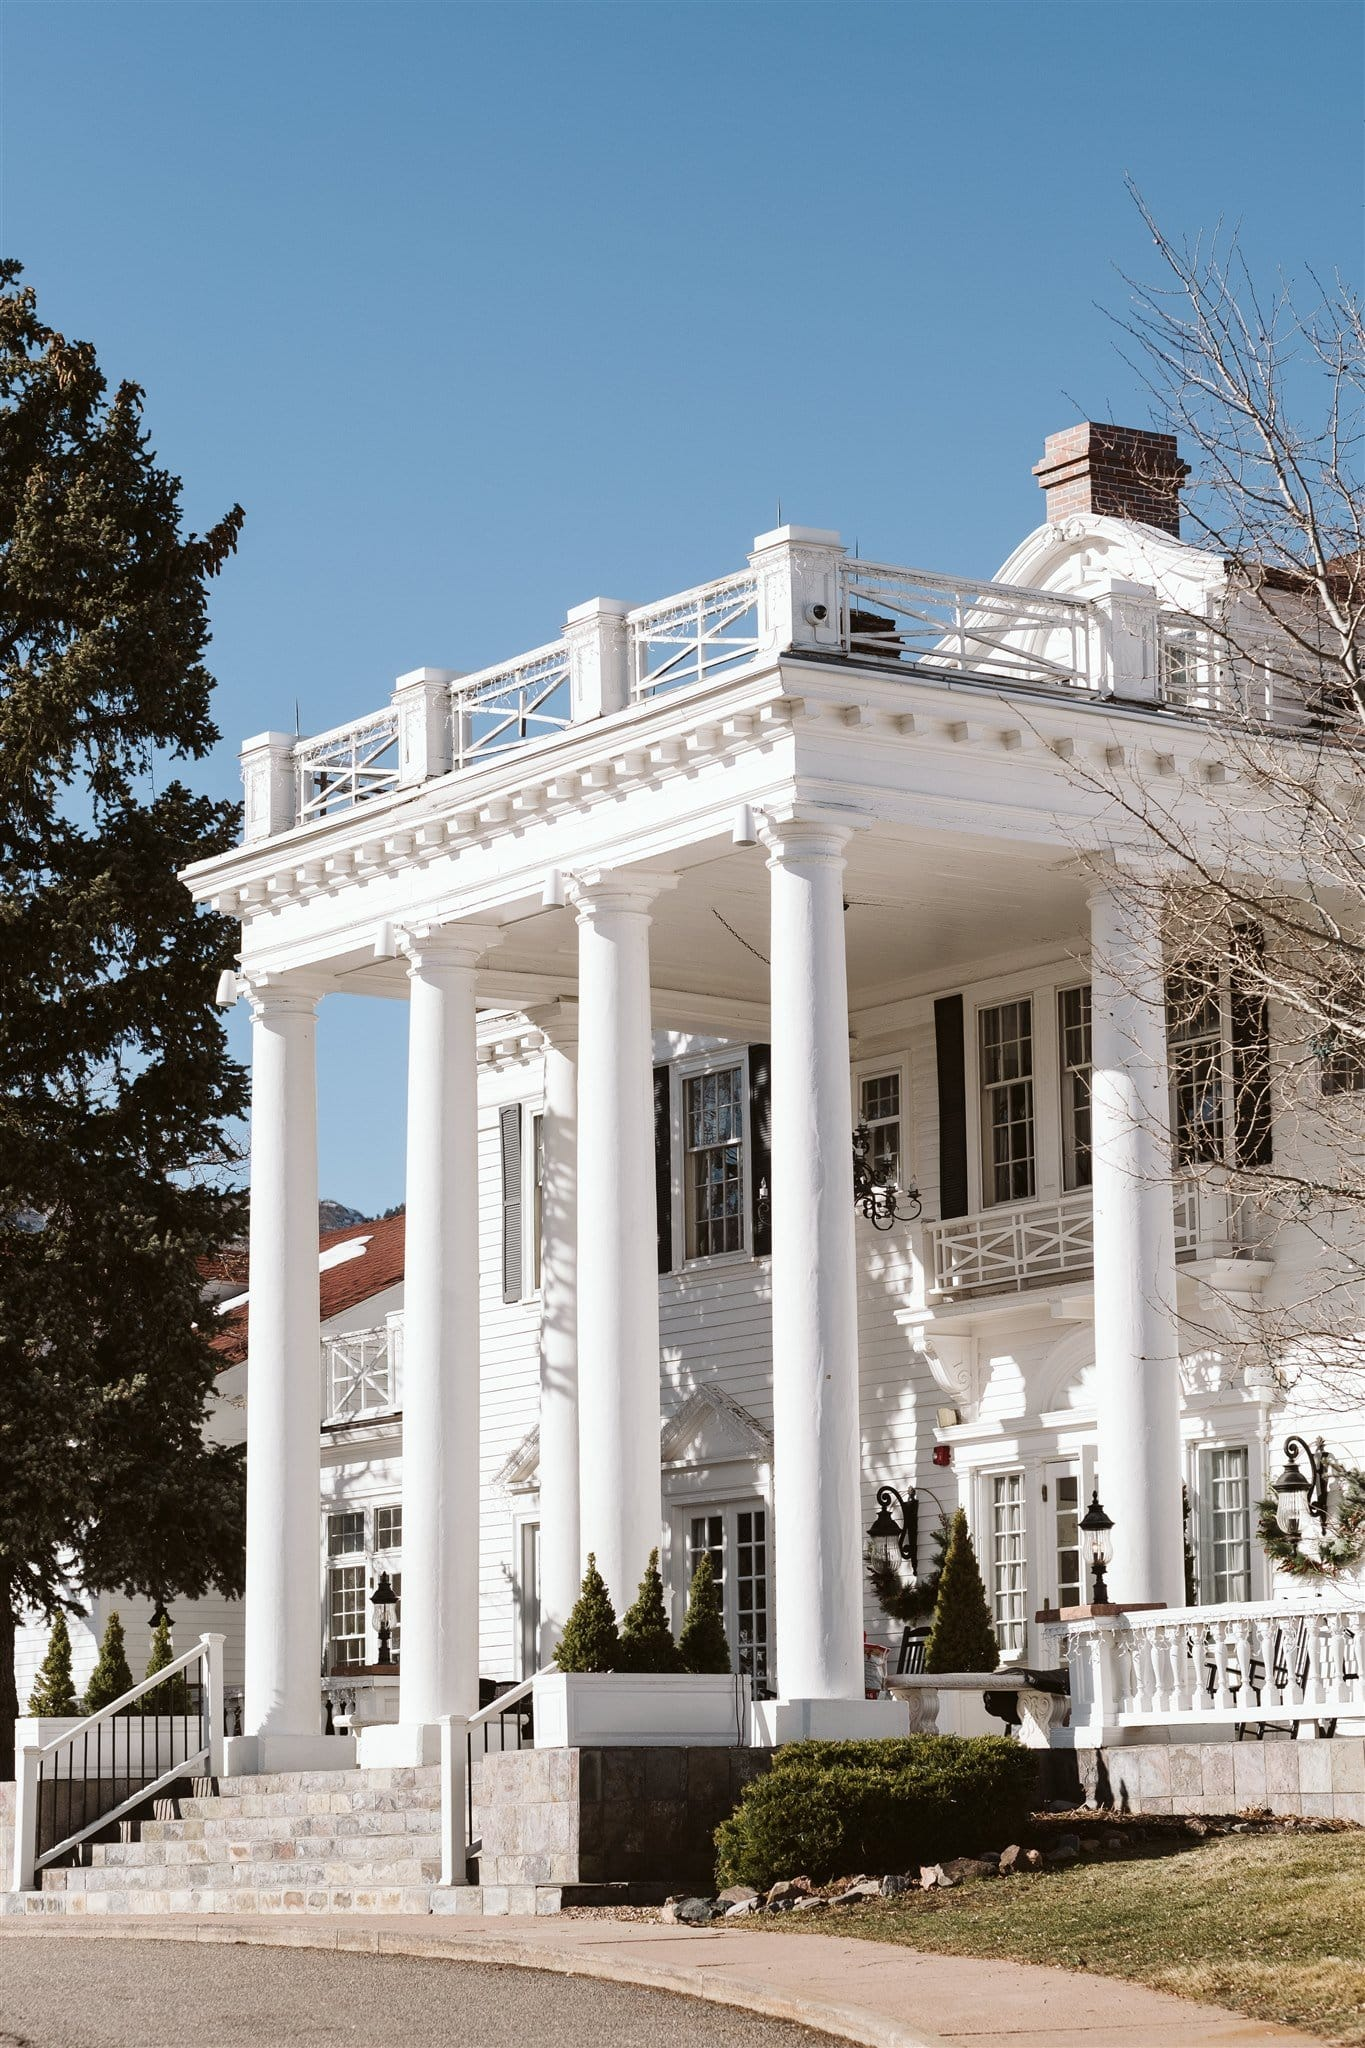 The Manor House wedding venue in Littleton